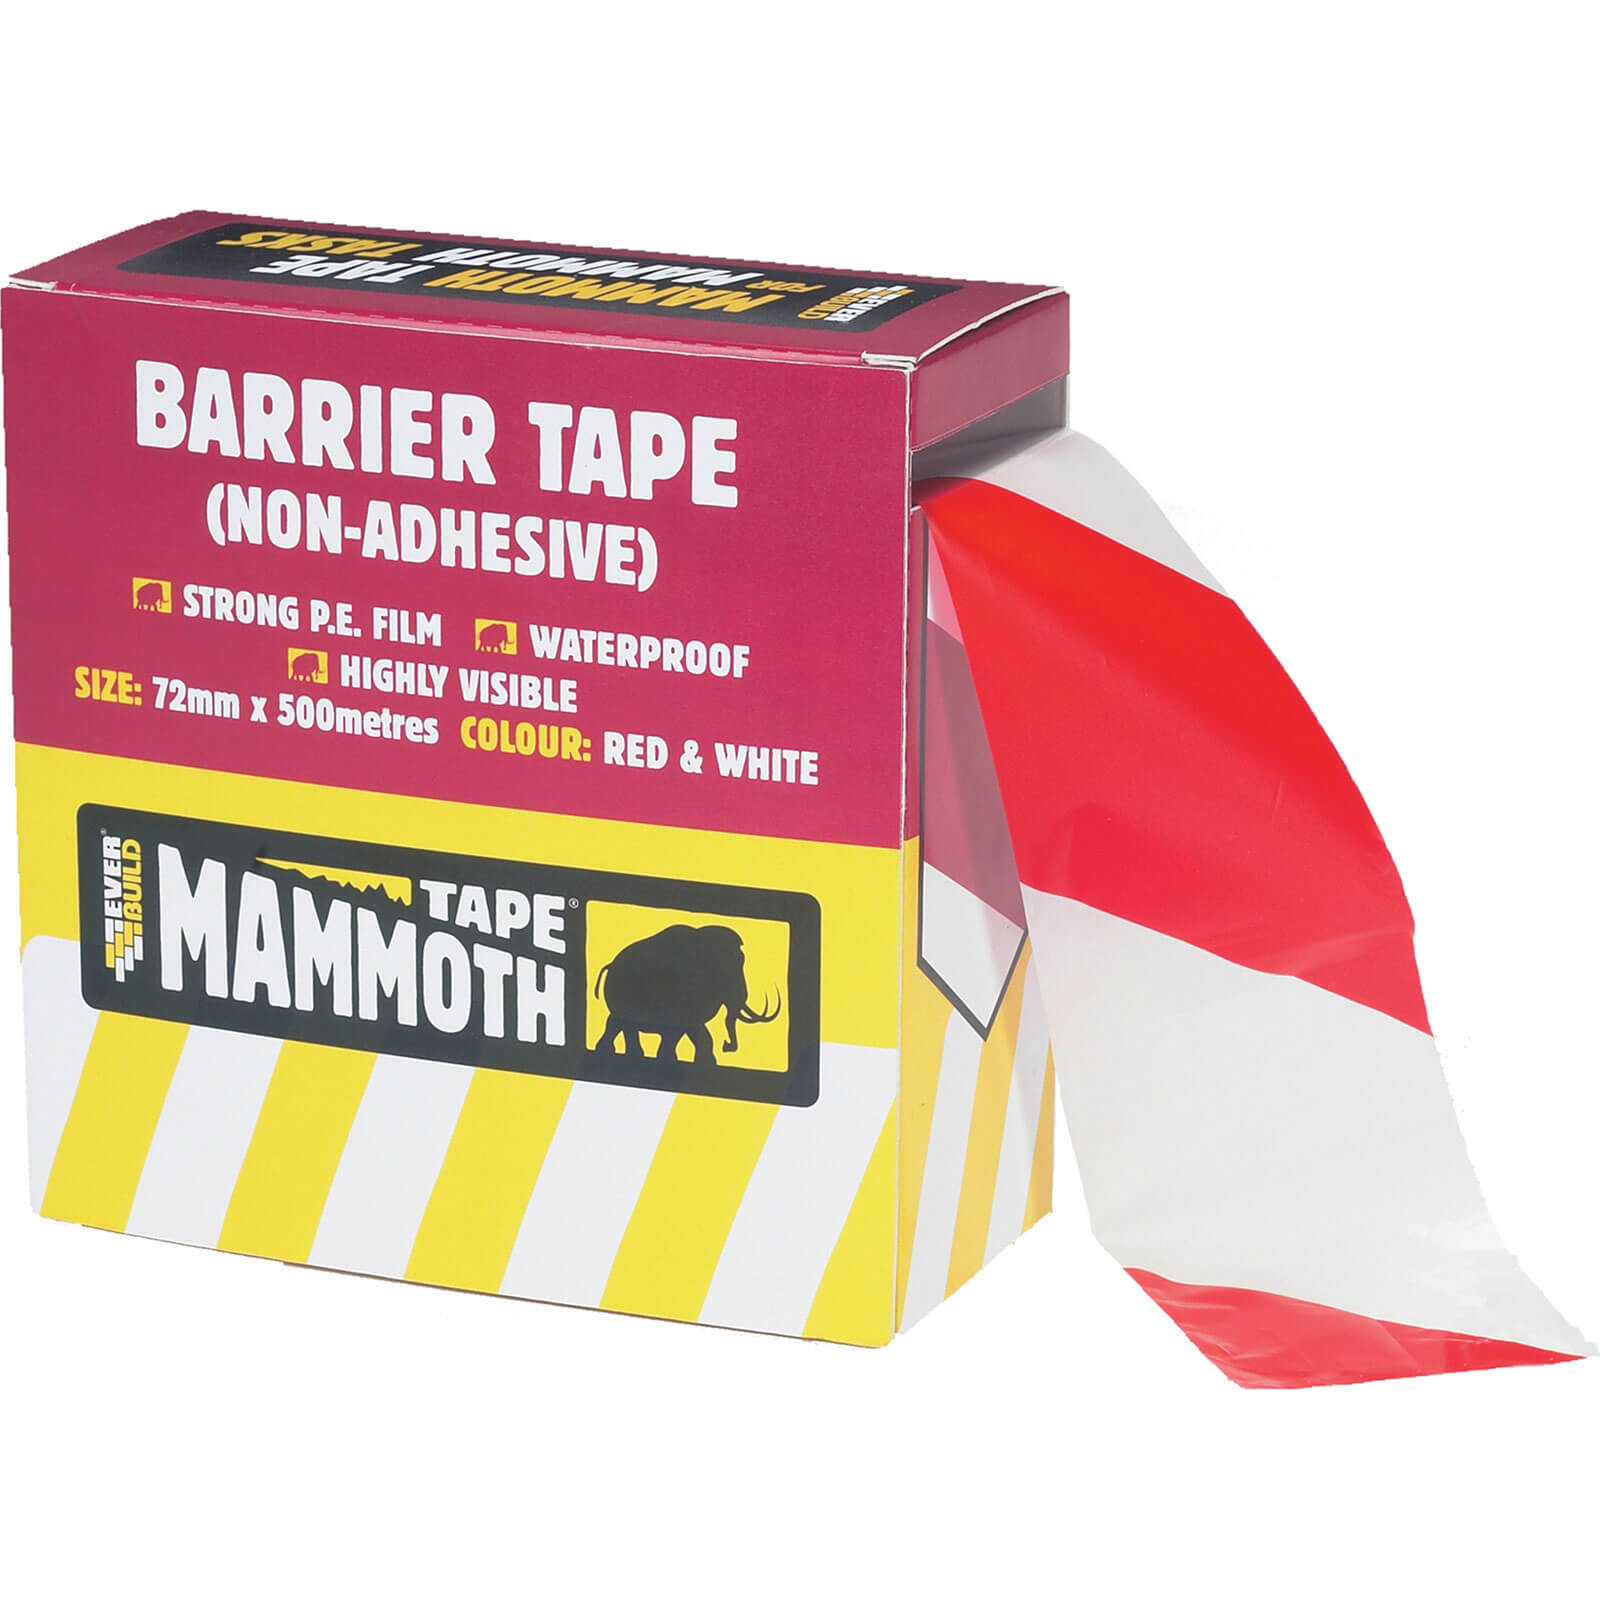 Image of Everbuild Non Adhesive Barrier Tape Red / White 72mm 500m